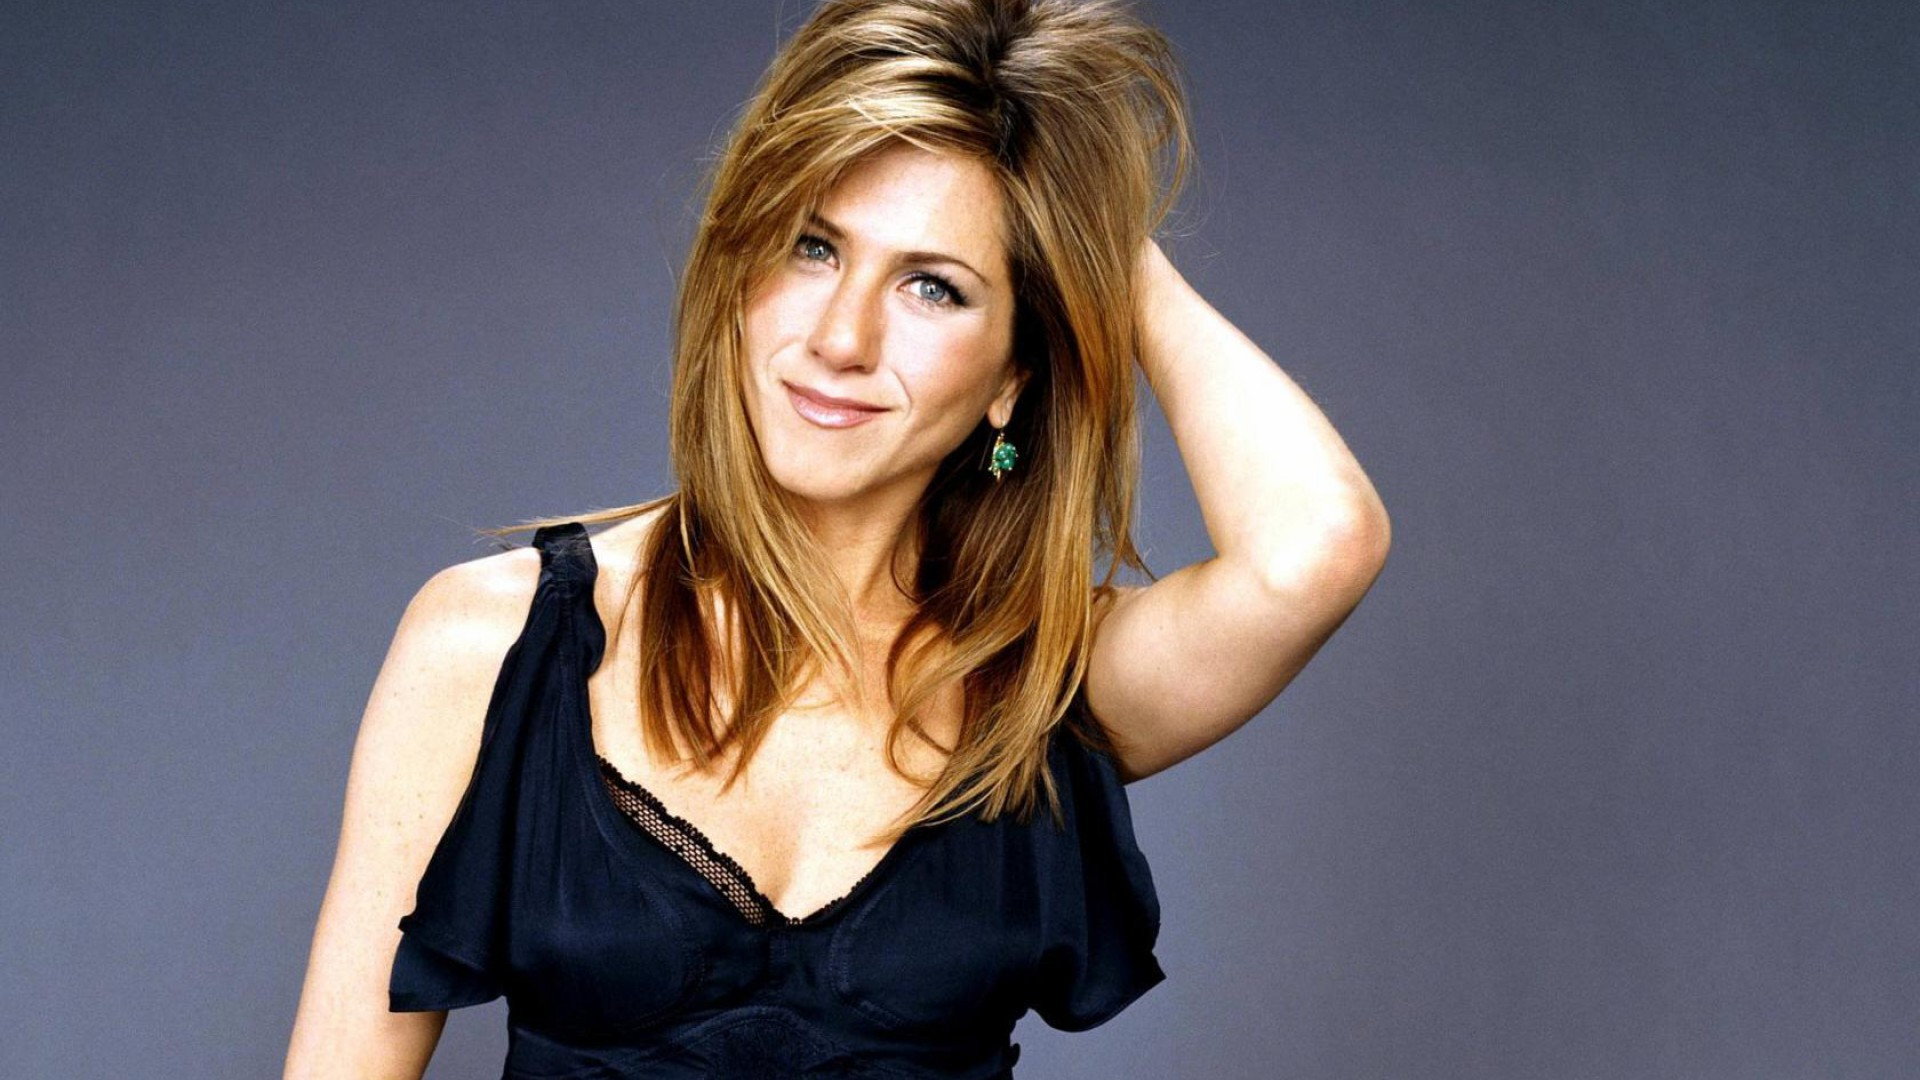 jennifer aniston wallpapers high resolution and quality